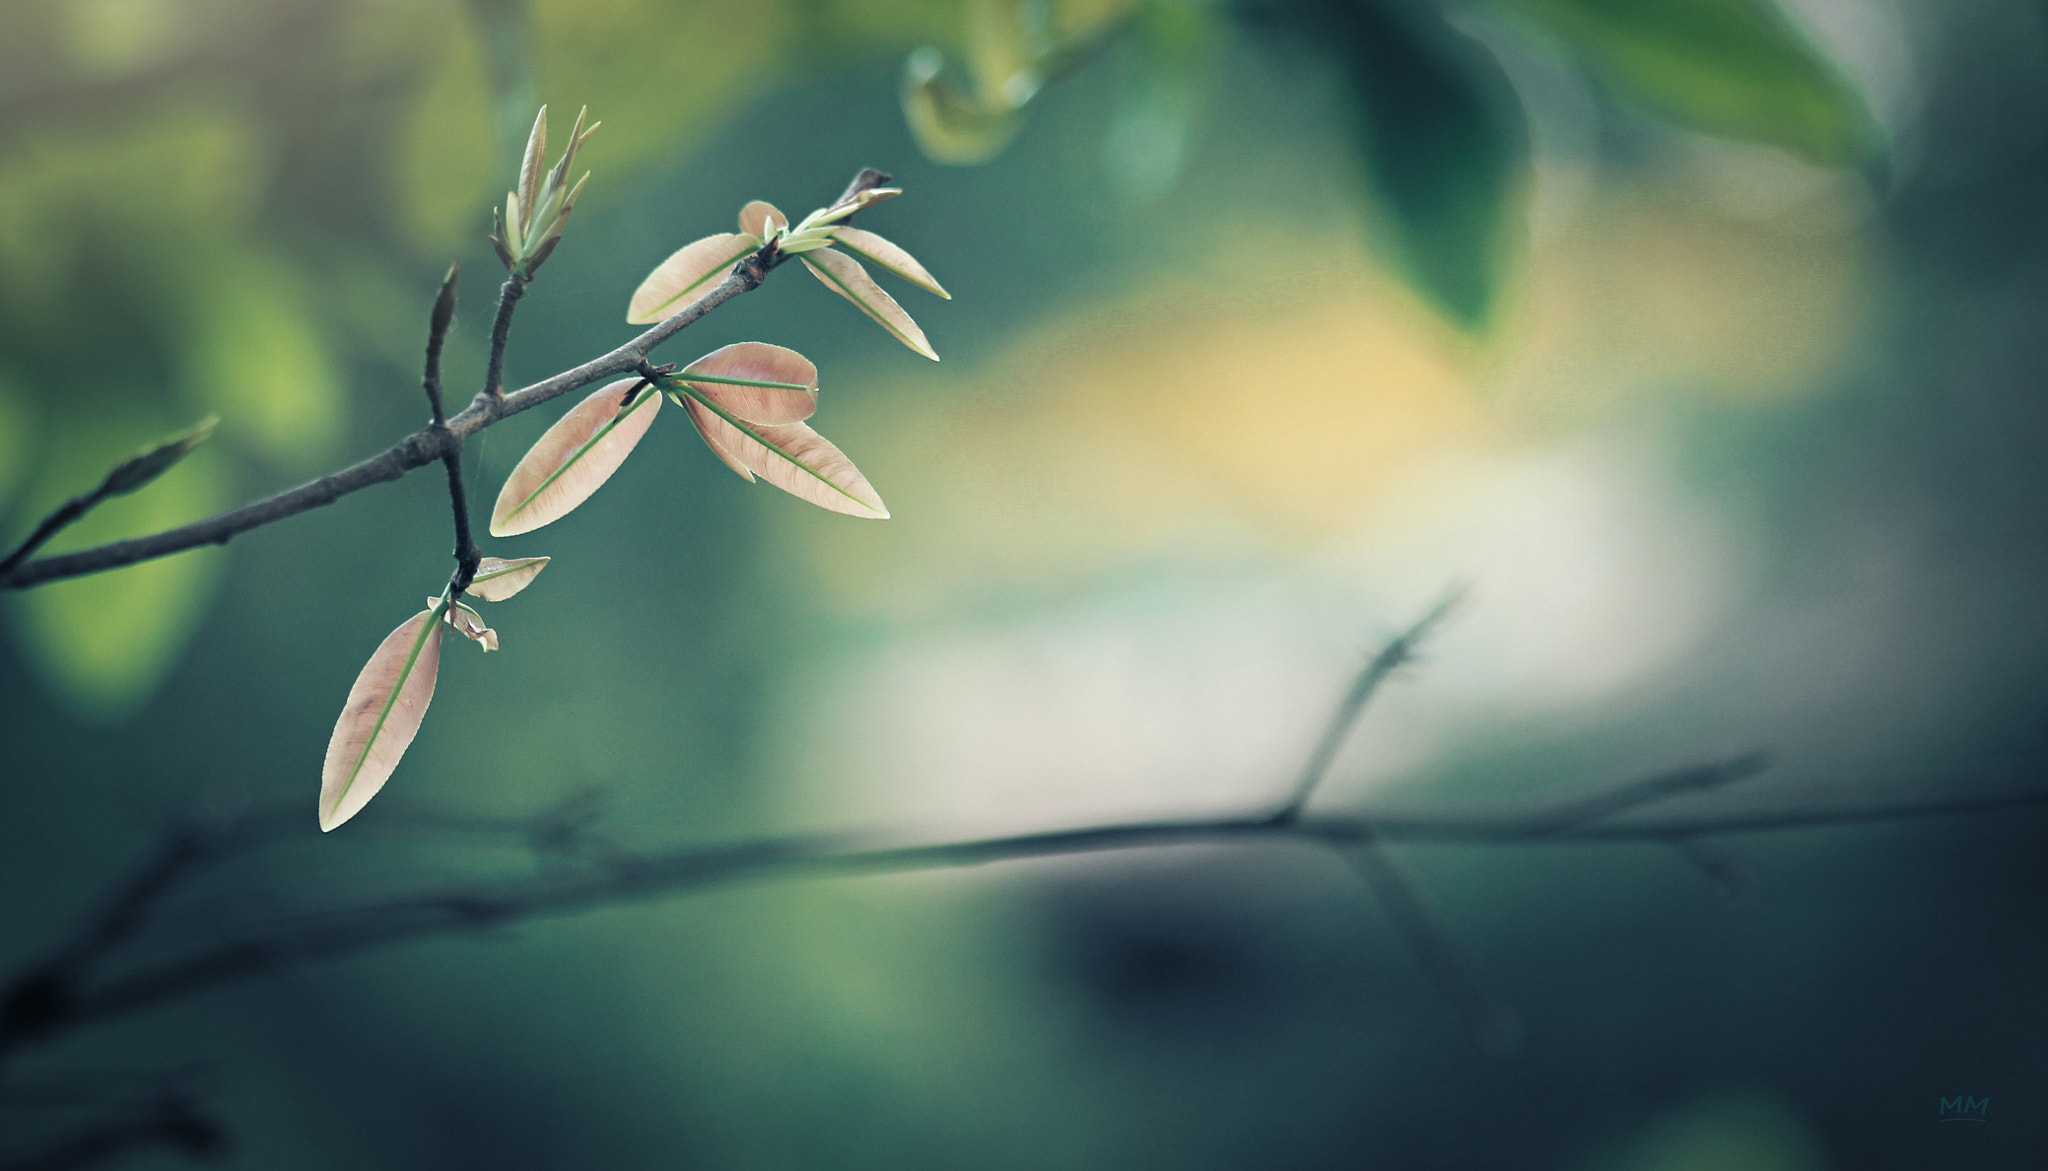 Photograph Leaves and spring. by MoMo  on 500px